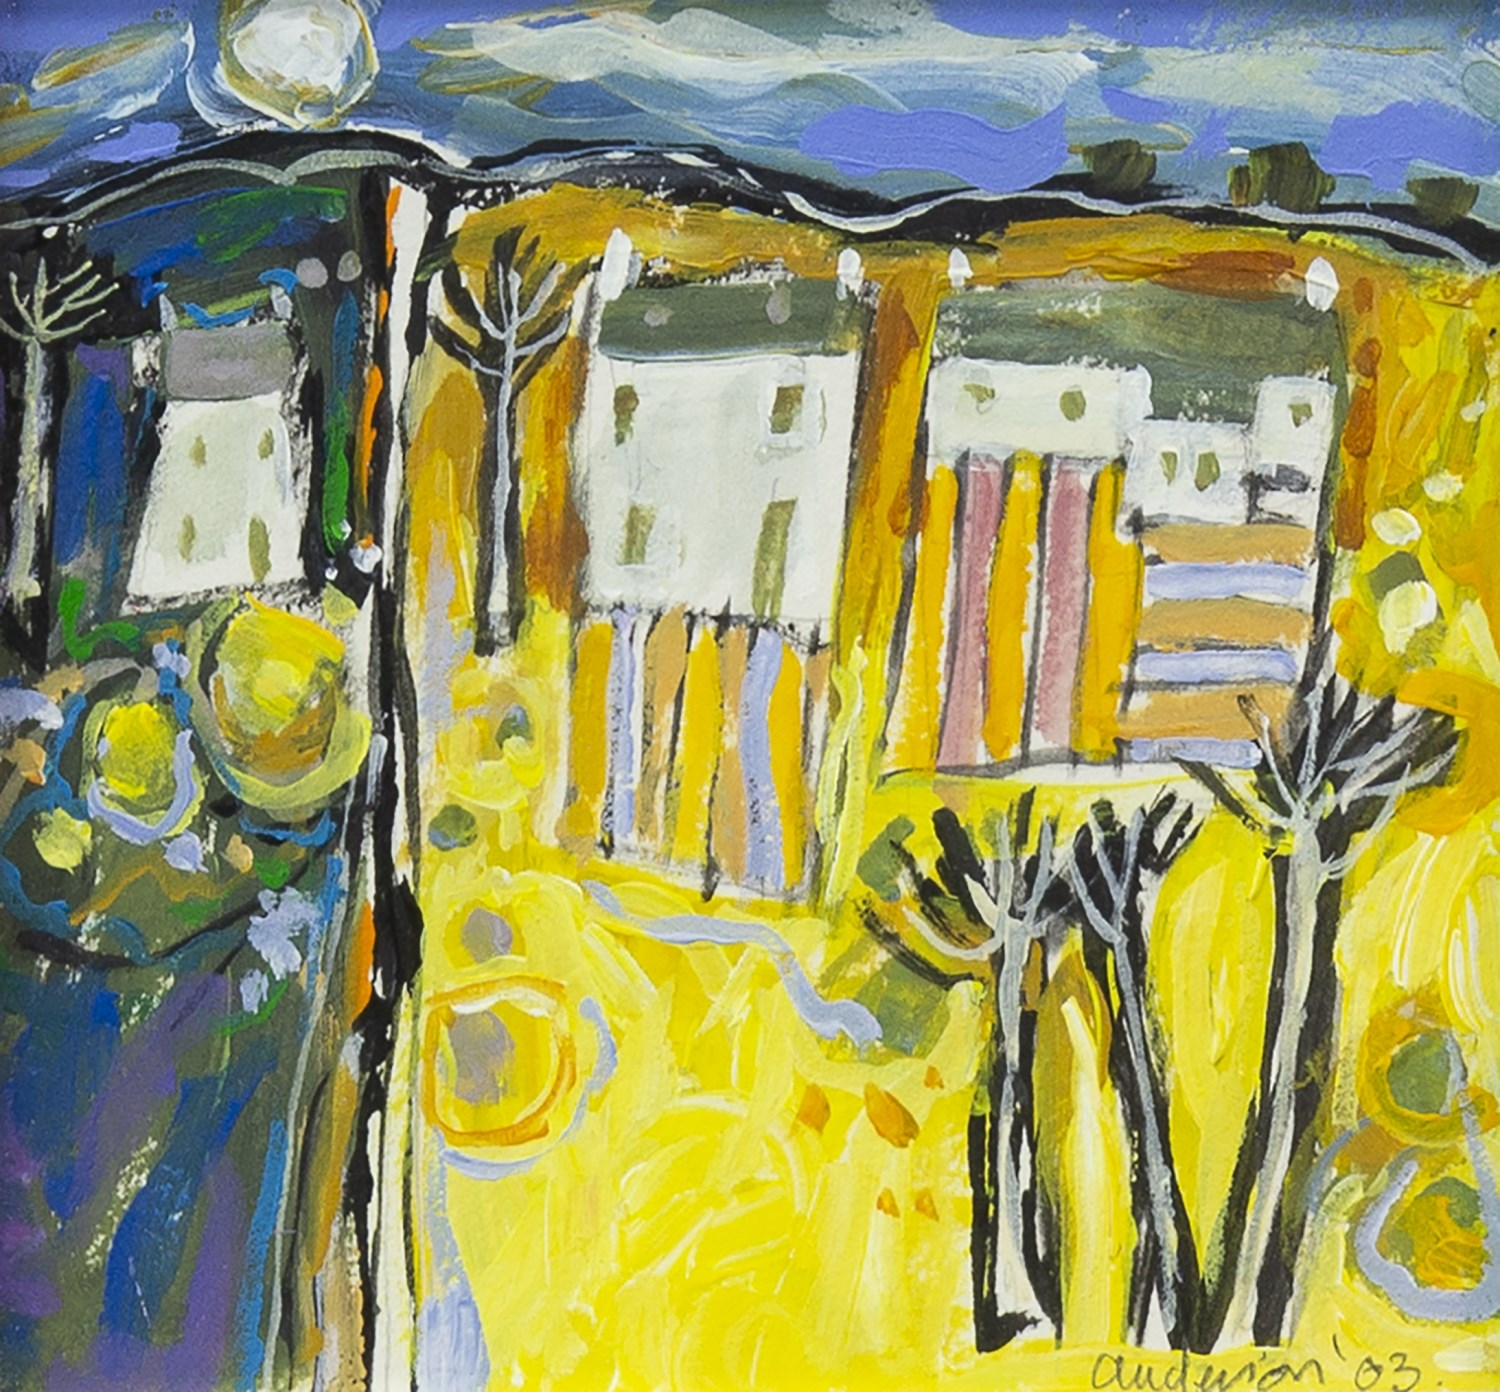 Lot 25 - YELLOW LANDSCAPE, AN ORIGINAL OIL BY CHARLES ANDERSON